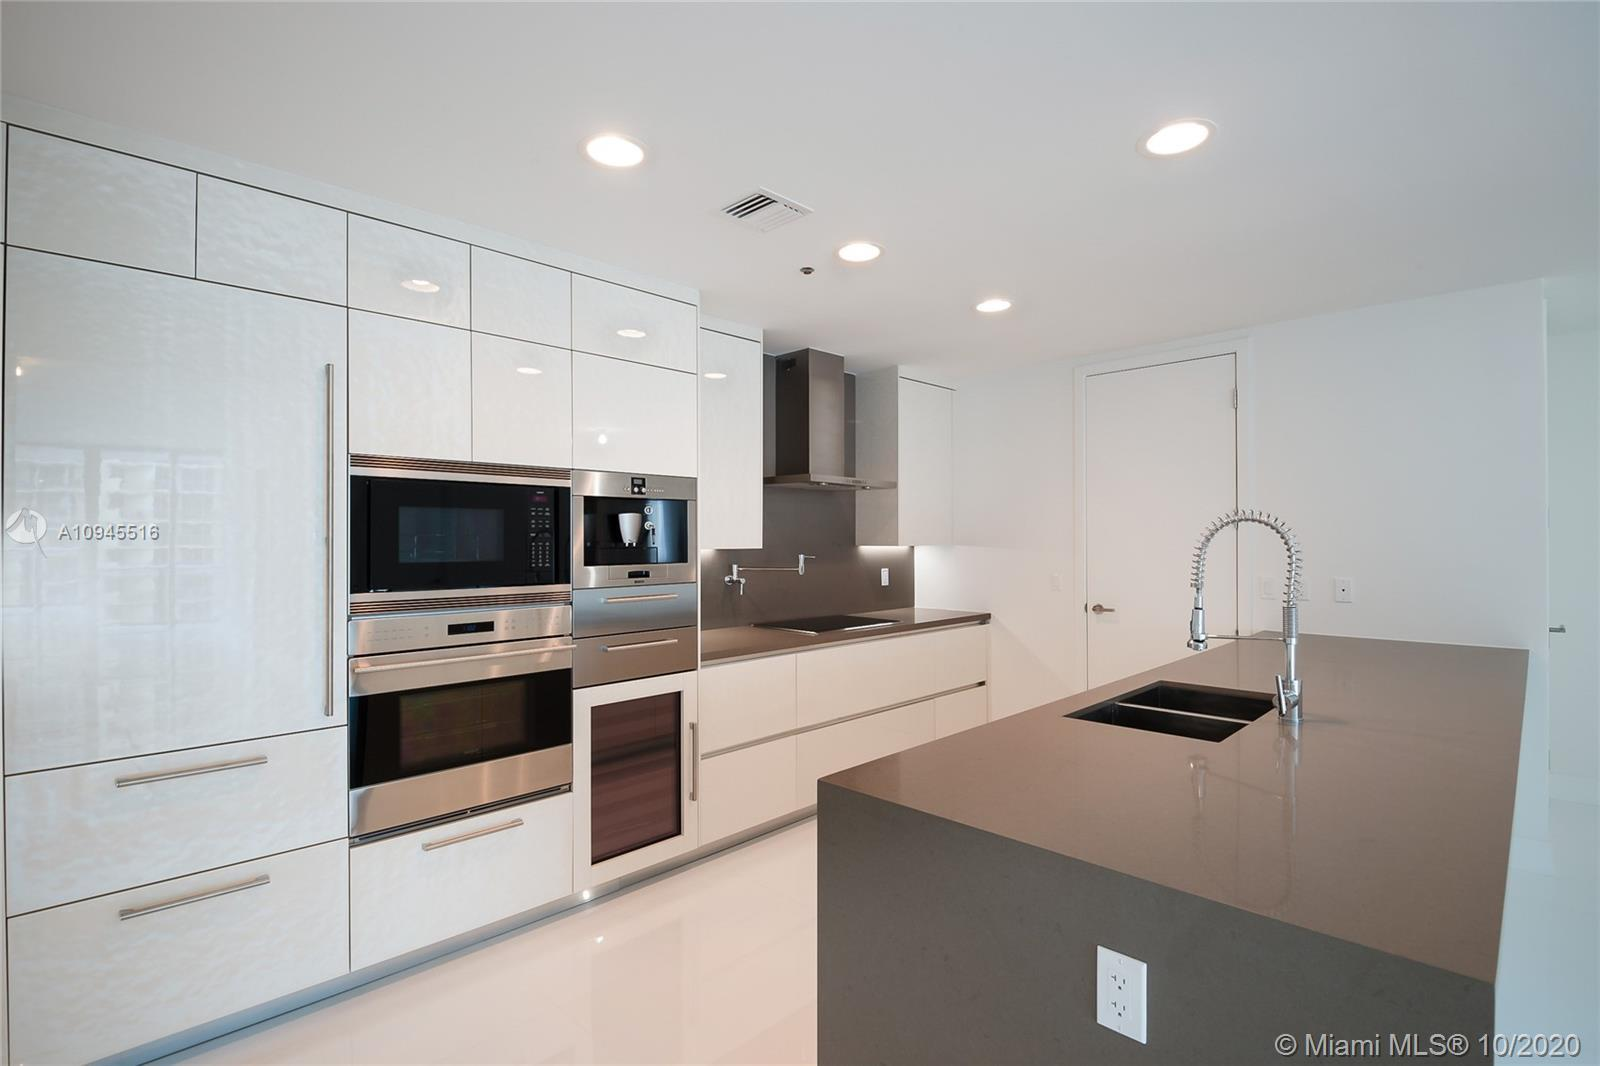 Spectacular sophisticated condo in the luxury Chateau Beach Condo. Timeless and inspiring views of t